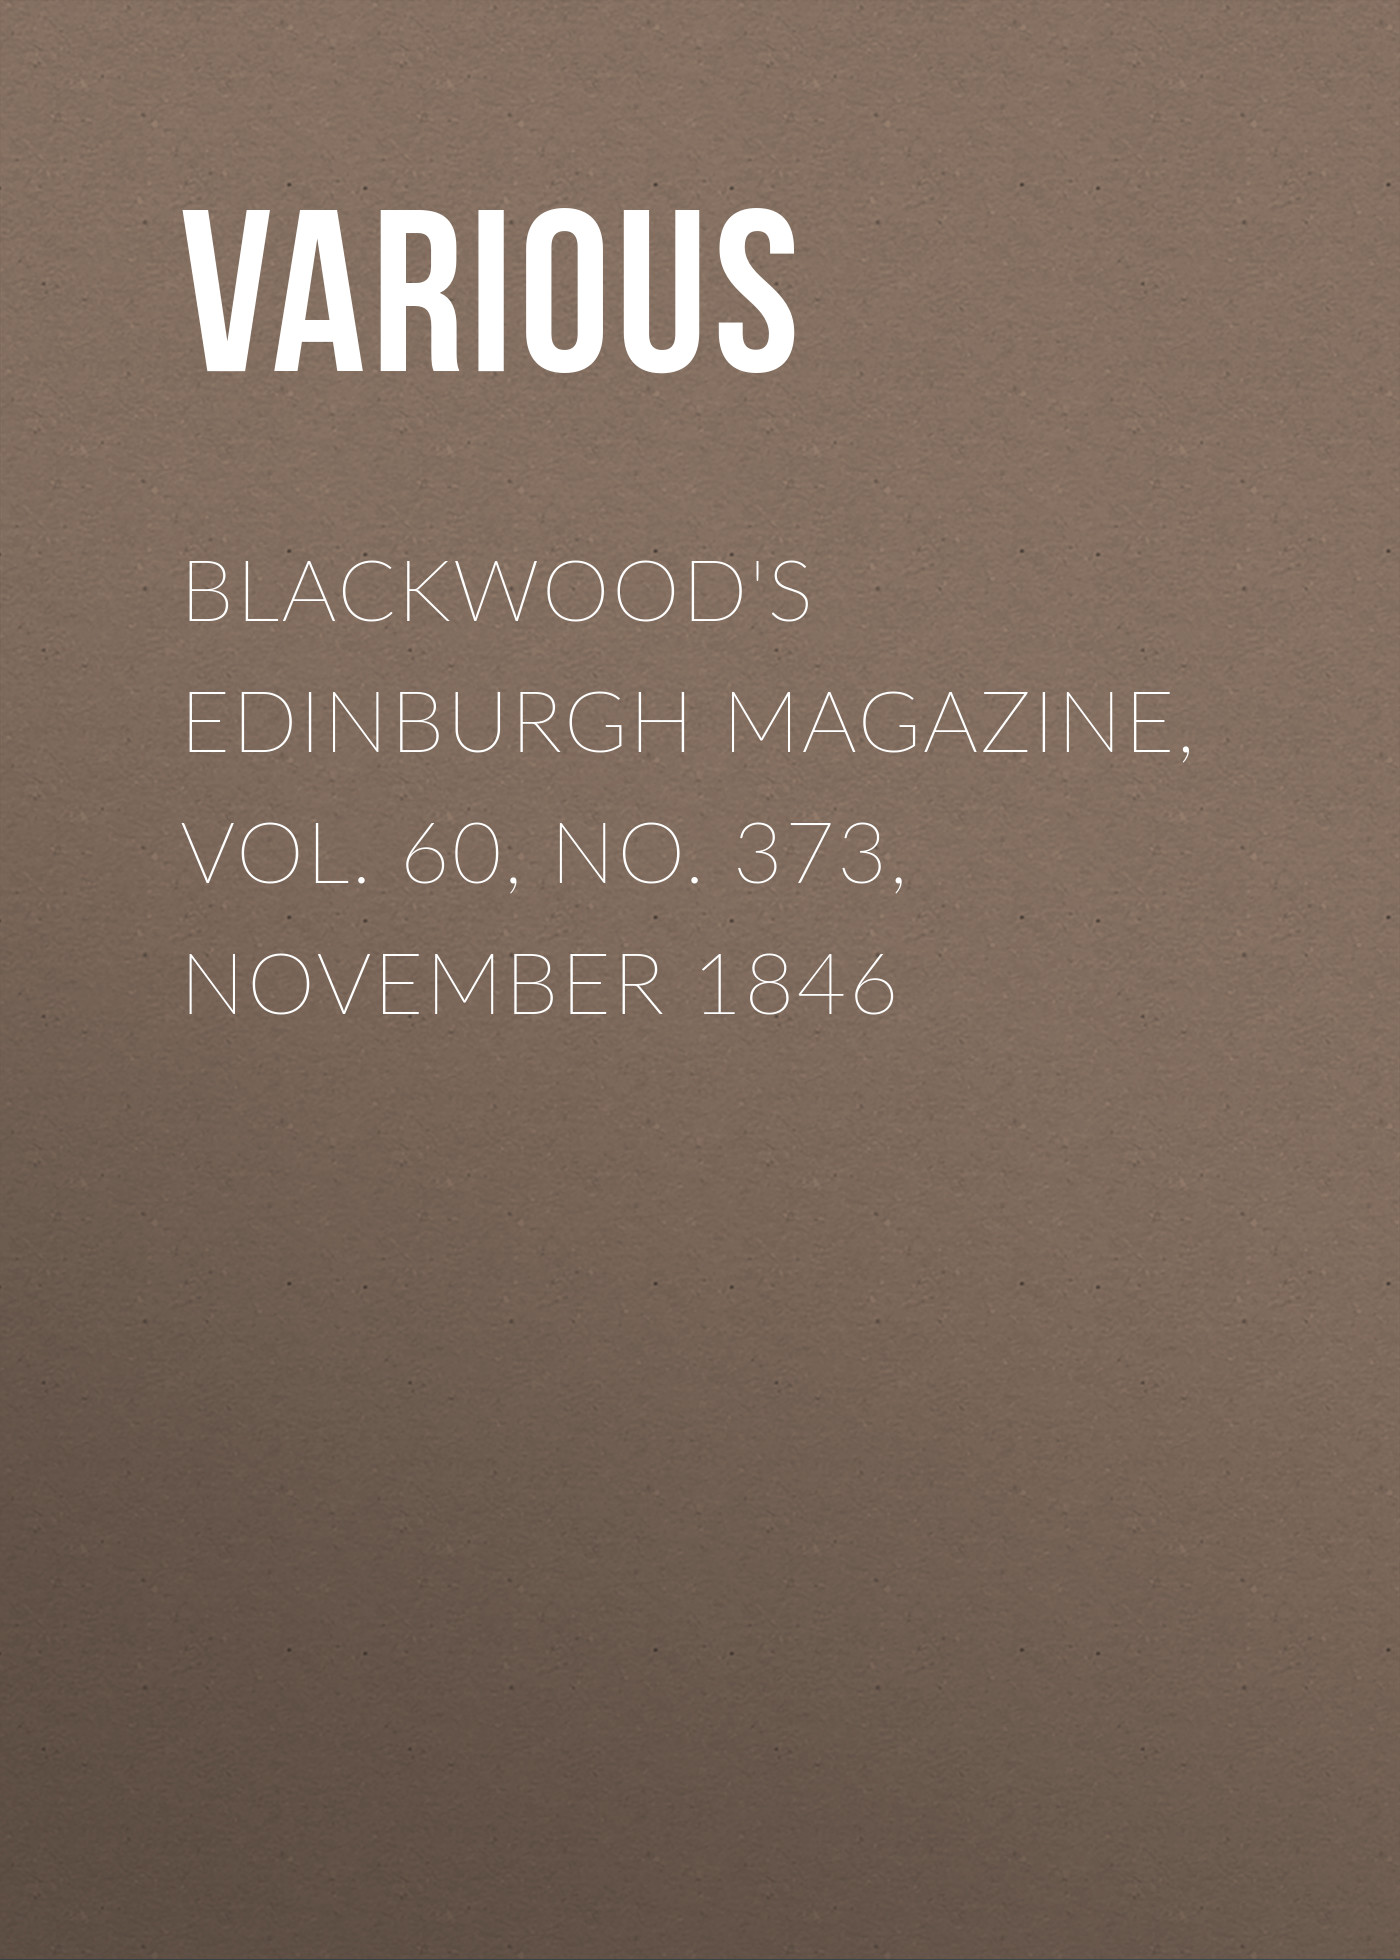 Various Blackwood's Edinburgh Magazine, Vol. 60, No. 373, November 1846 цена